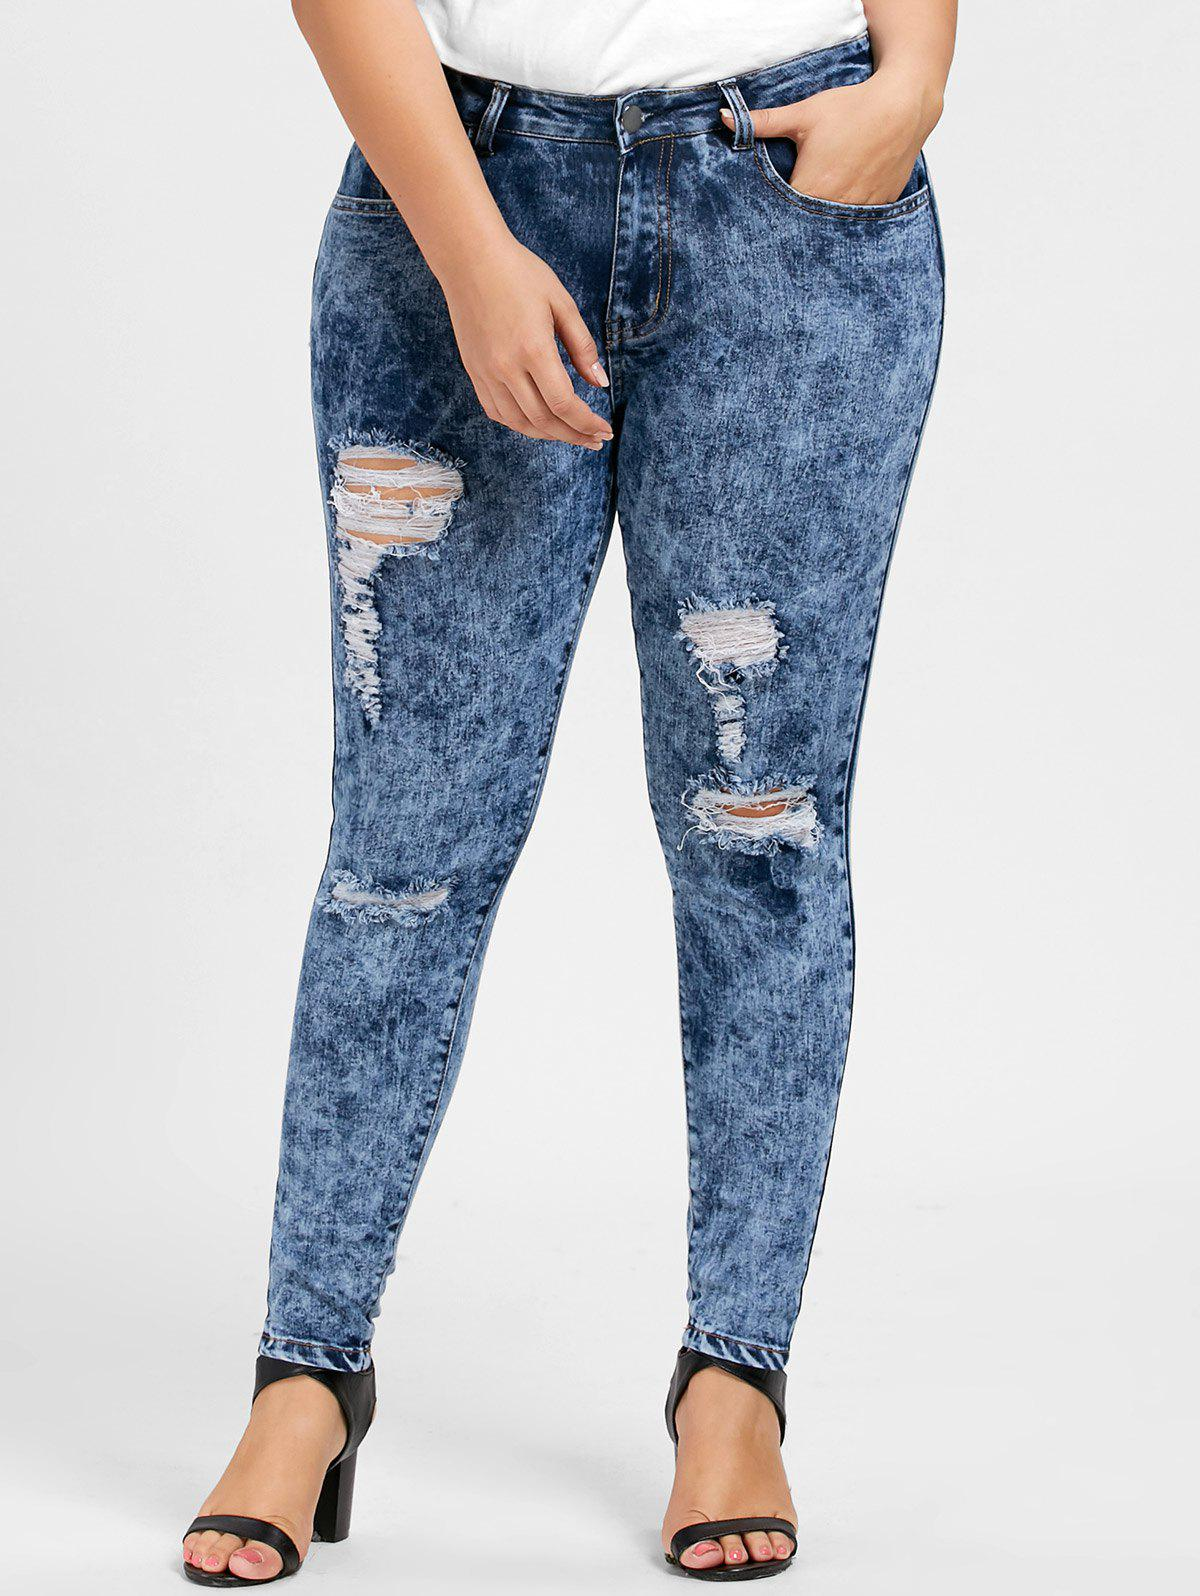 Plus Size Ripped Skinny Zipper Jeans chic women s ripped skinny jeans